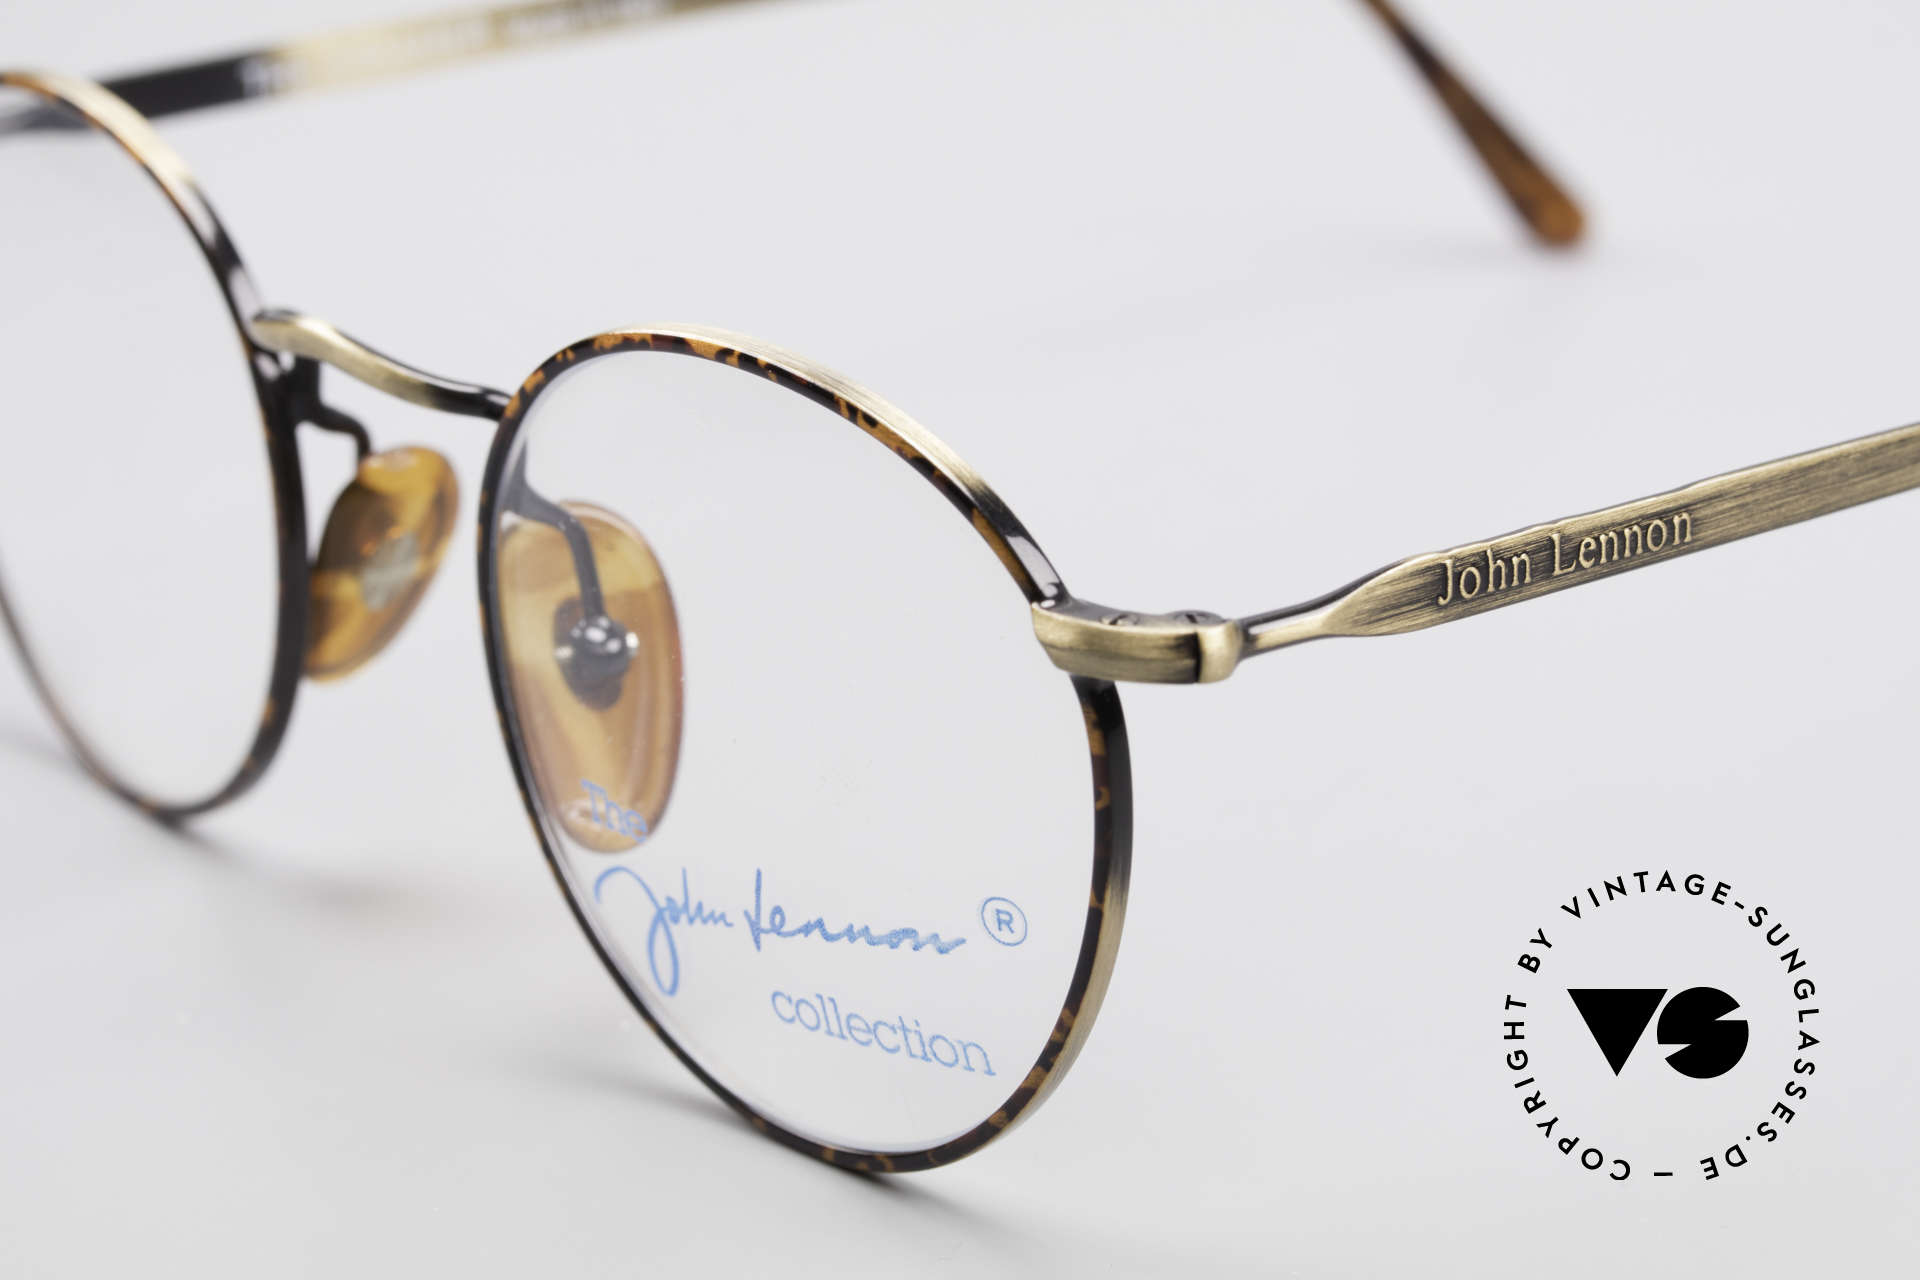 John Lennon - The Dreamer Very Small Vintage Glasses, typical distinctive John Lennon Look, simply legendary, Made for Men and Women